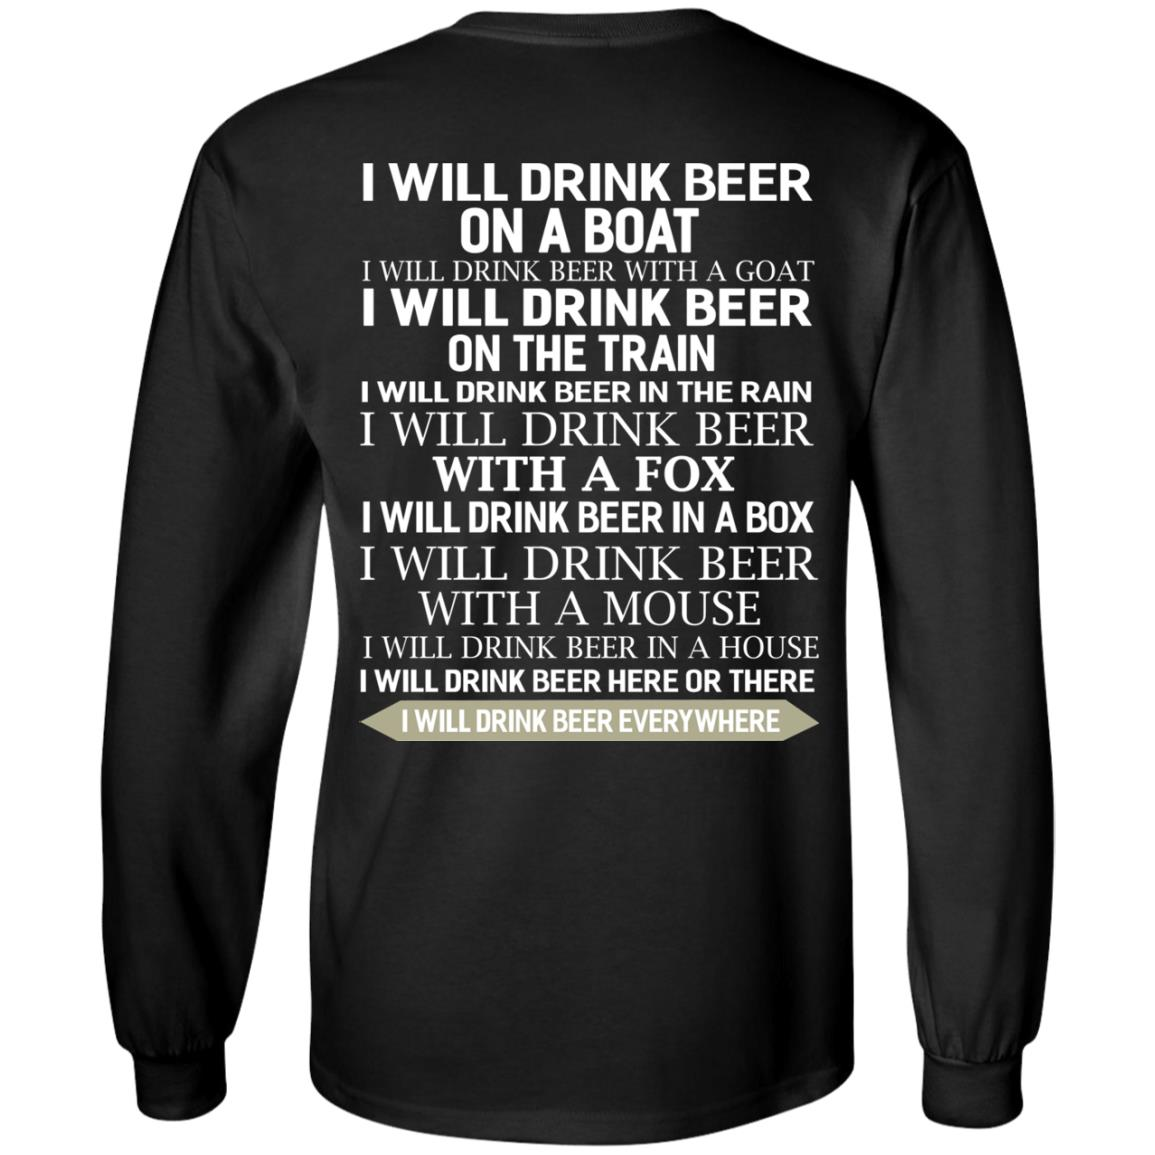 image 315 - I Will Drink Beer On a Boat I Will Drink Beer With a Goat Shirt